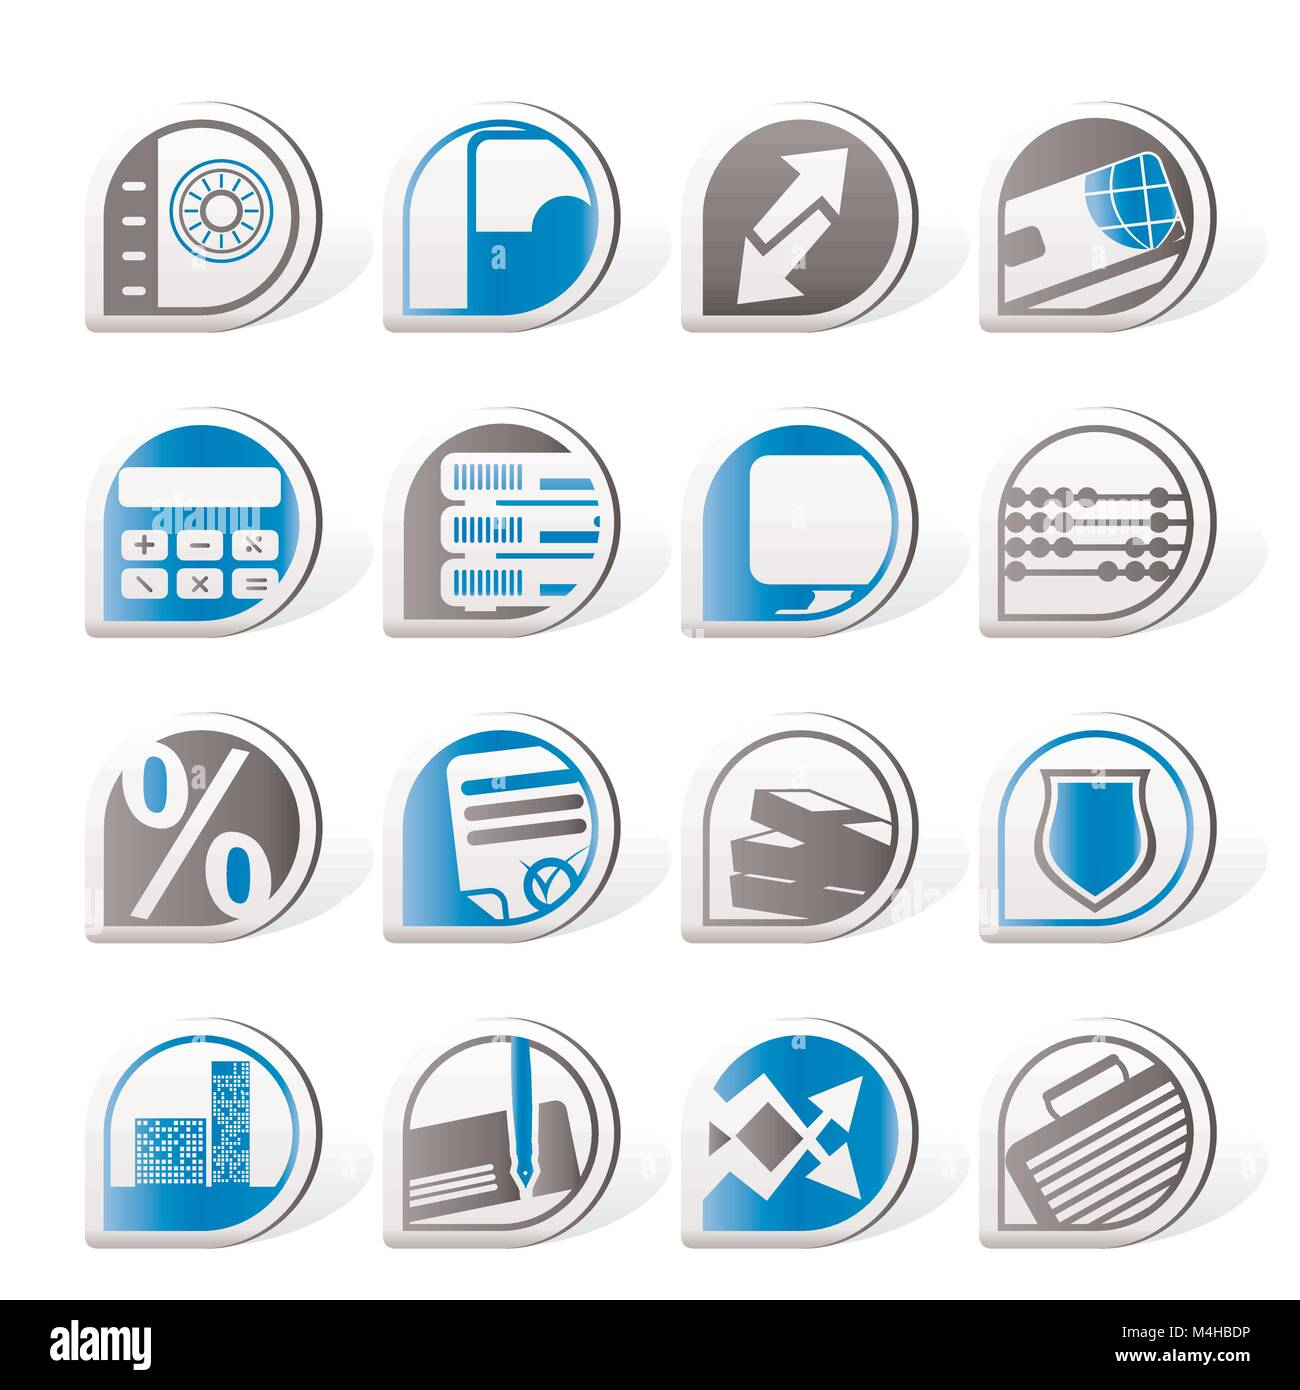 Simple bank, business, finance and office icons - vector